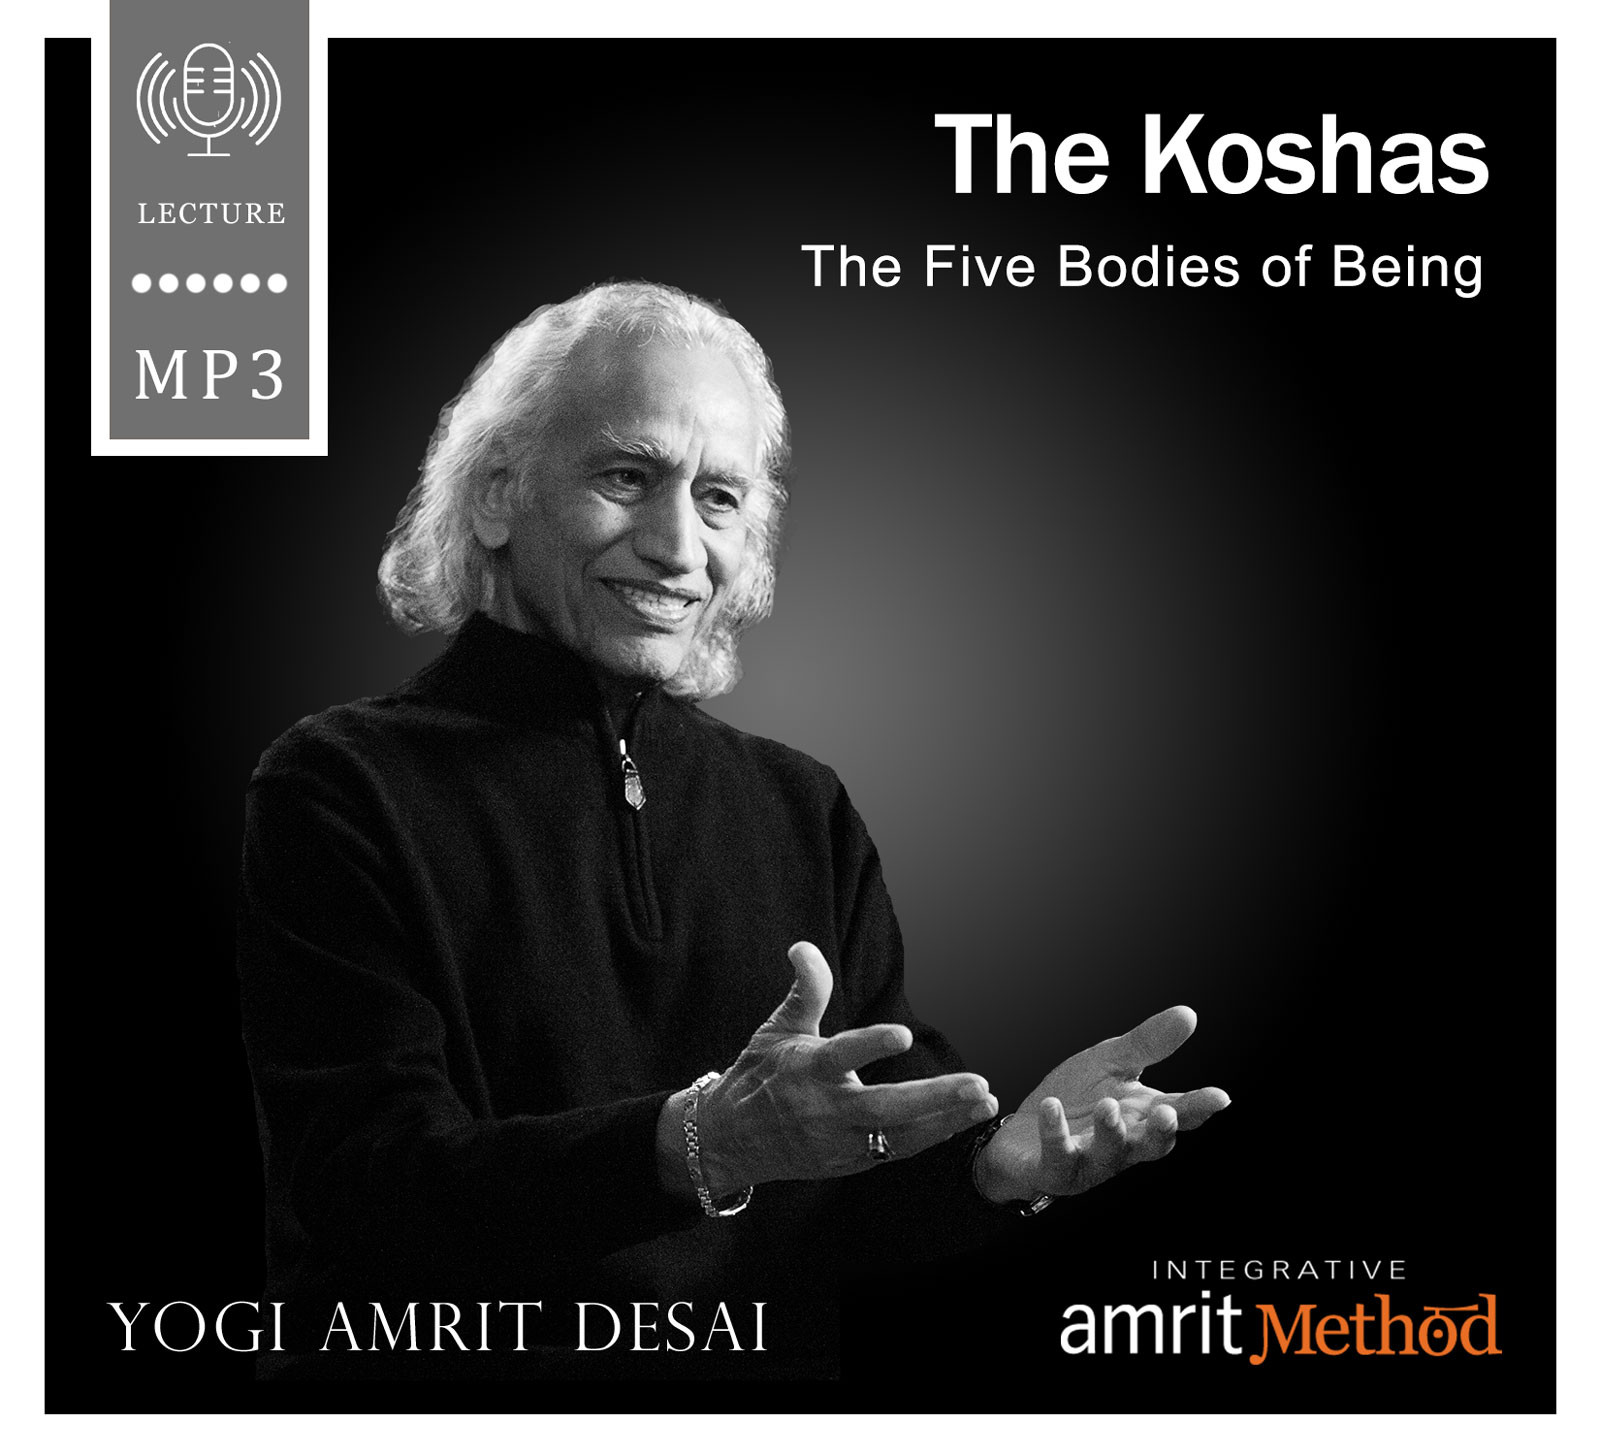 Step inside the koshas, the five bodies of being, with this revealing lecture. Yogi Amrit Desai provides deep insights into the relationships between the different koshas, prana, the heart, the mind and the soul, allowing us to see directly into the very core of our being. Each of the five bodies plays a critical part in our existence. Yogi Desai describes the intricacies of the annamayakosha (physical body), pranamayakosha (energy body), manomayakosha (mental body), vijnanamayakosha (intellect body), and the anandamayakosha (bliss body). Learn about the evolutionary impulse for Shiva to meet with Shakti so that the Shakti may flow freely through all the chakras and all of the bodies without inhibitions. This is the core of what we call joy and fulfillment. Originally recorded on May 20, 2003 in Cumberland, Rhode Island. Duration: 58 minutes.